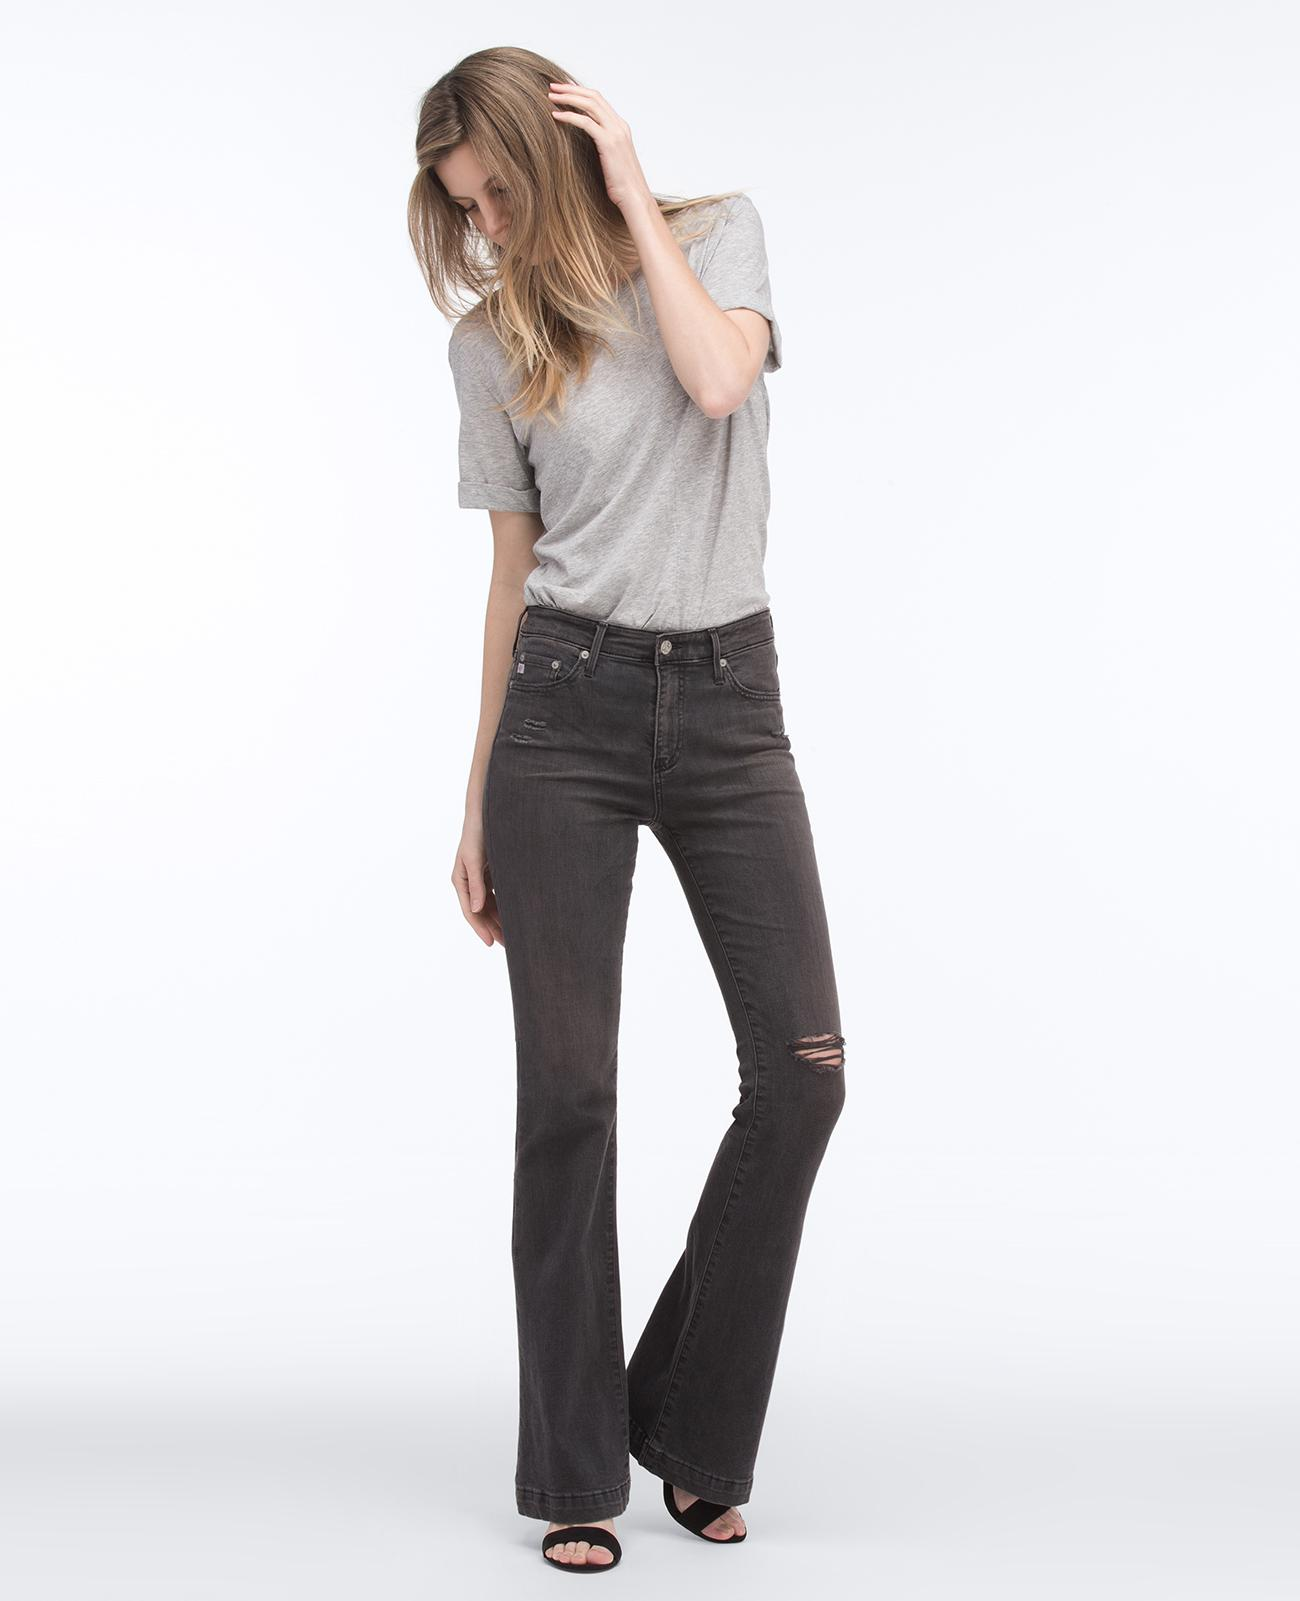 10 Janis Worn The Years Well Flare Official Jeans Ag Black In CWrxoBde